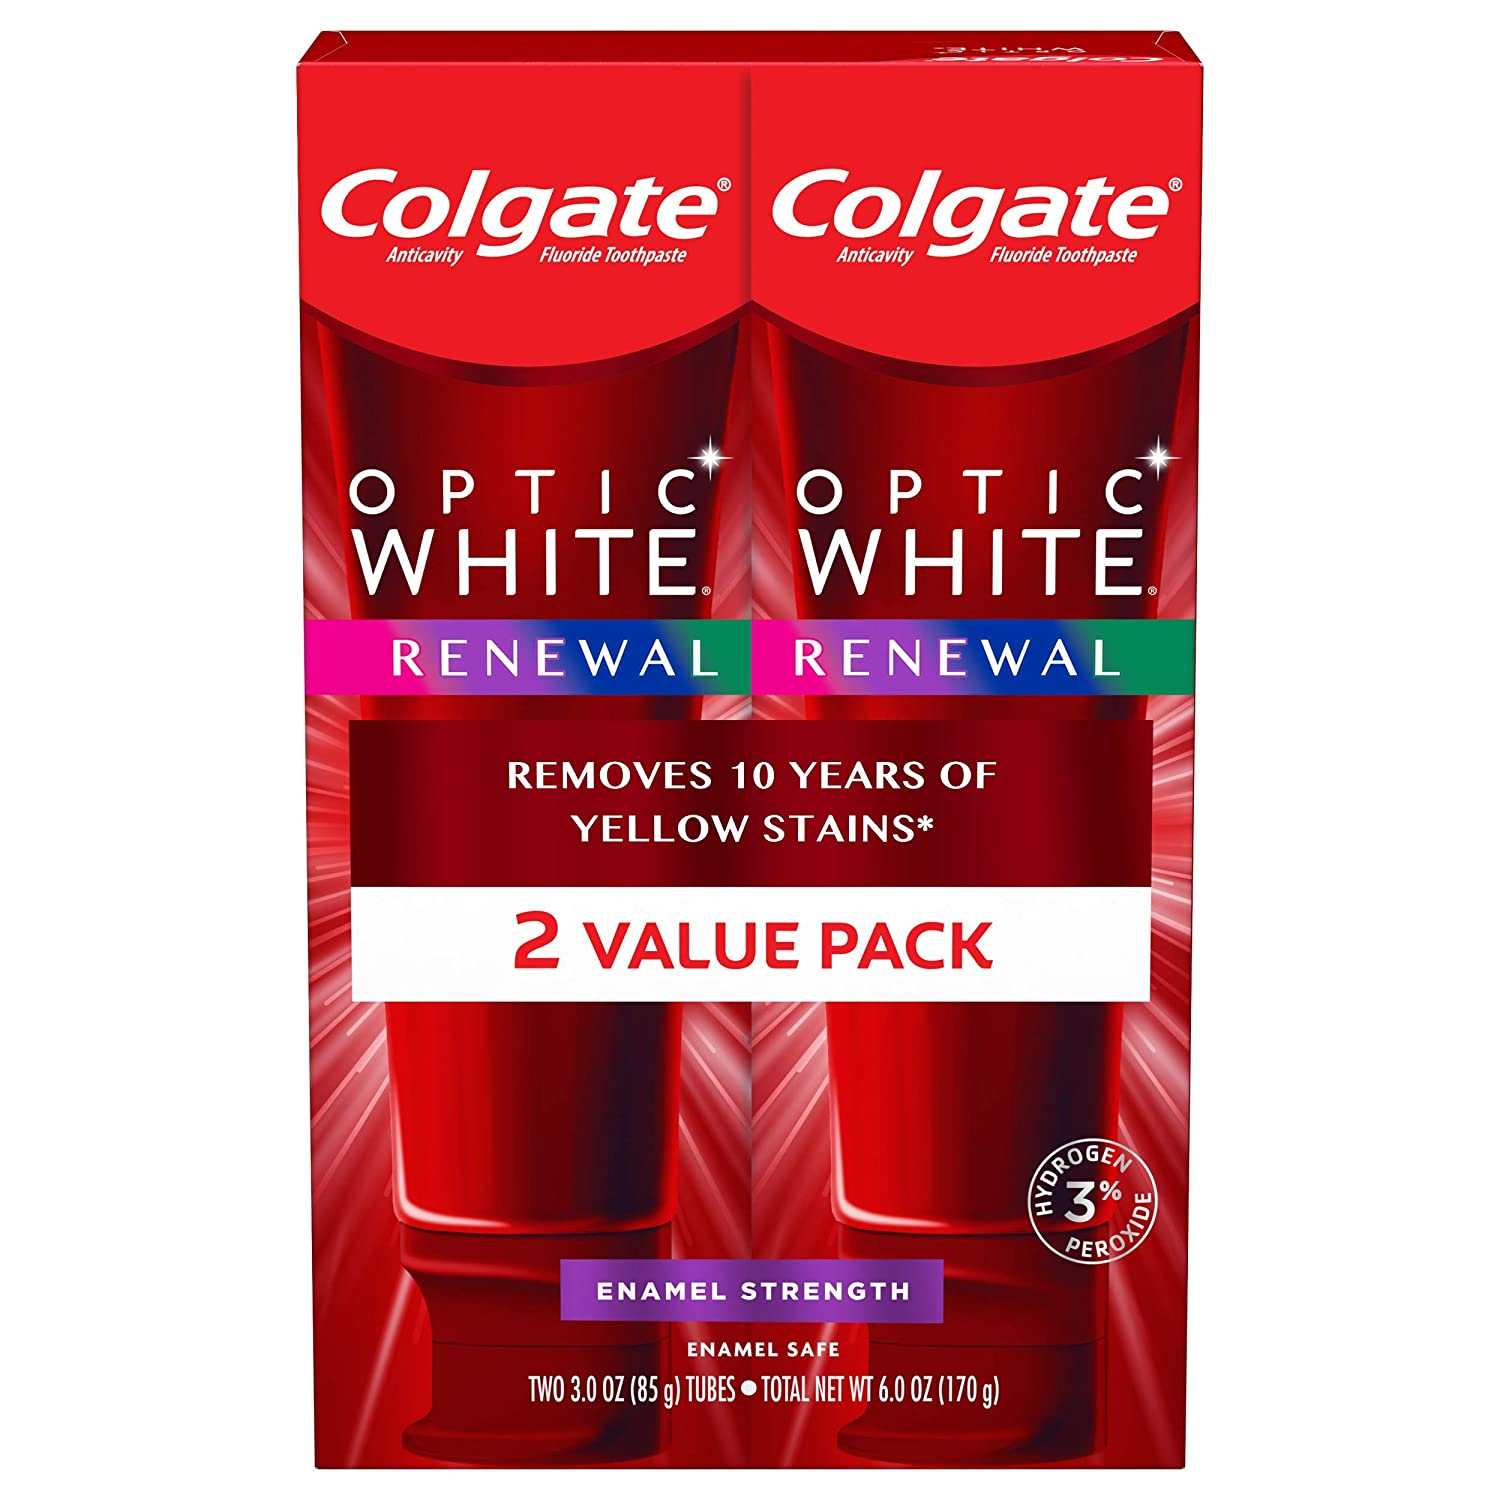 Colgate Optic White Renewal High Impact White Toothpaste, 3 oz (Pack of 2)